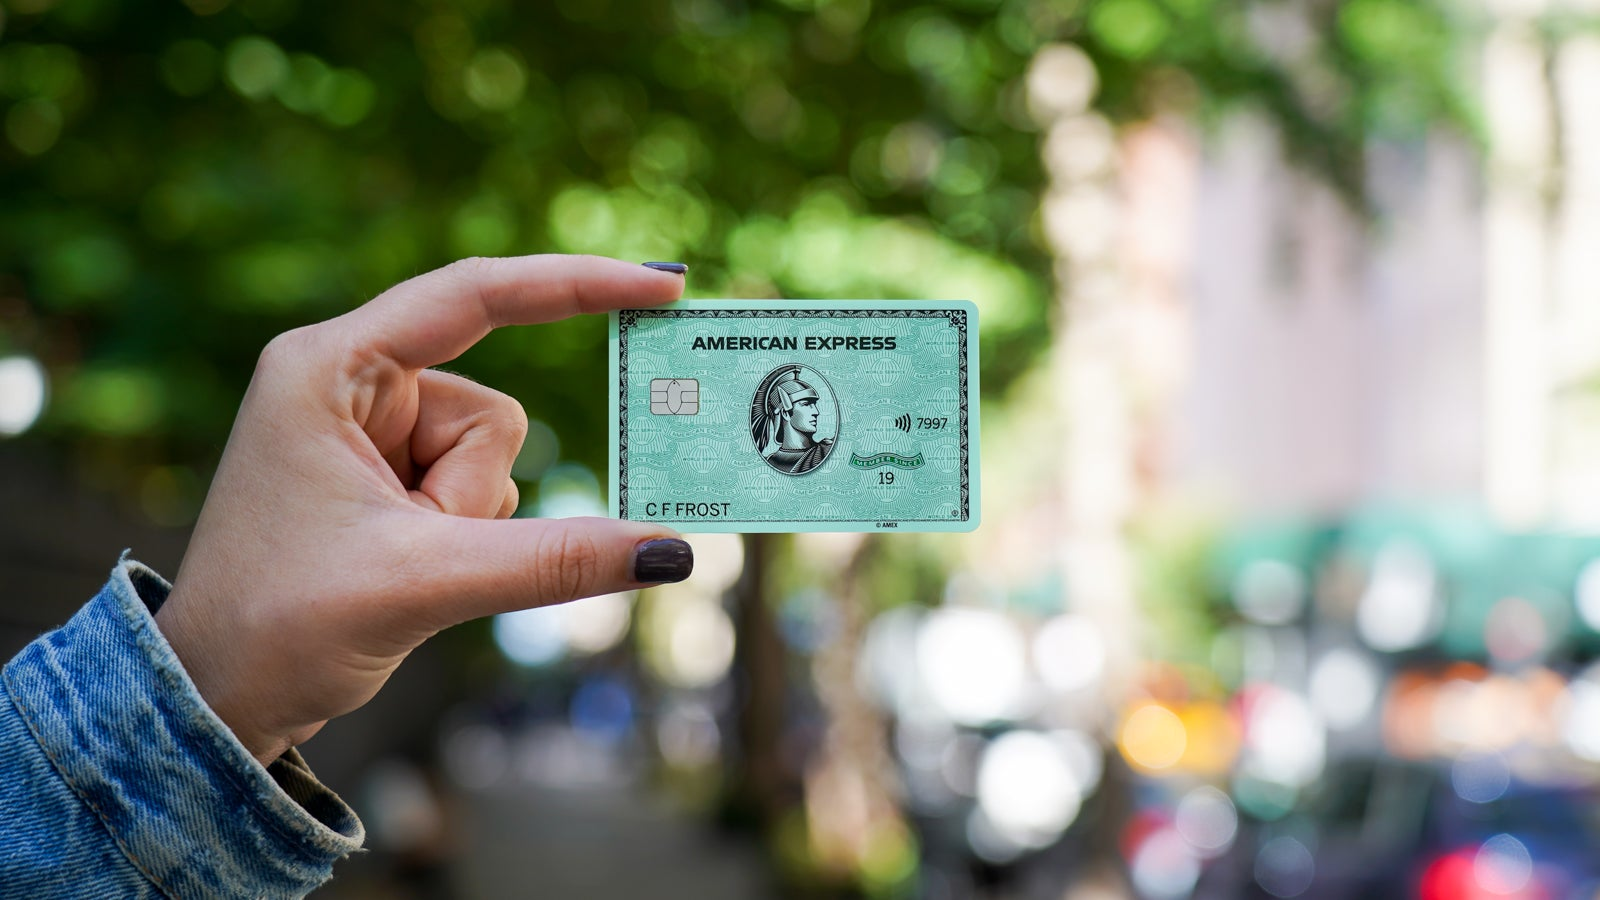 American Express Green Card Review - The Points Guy